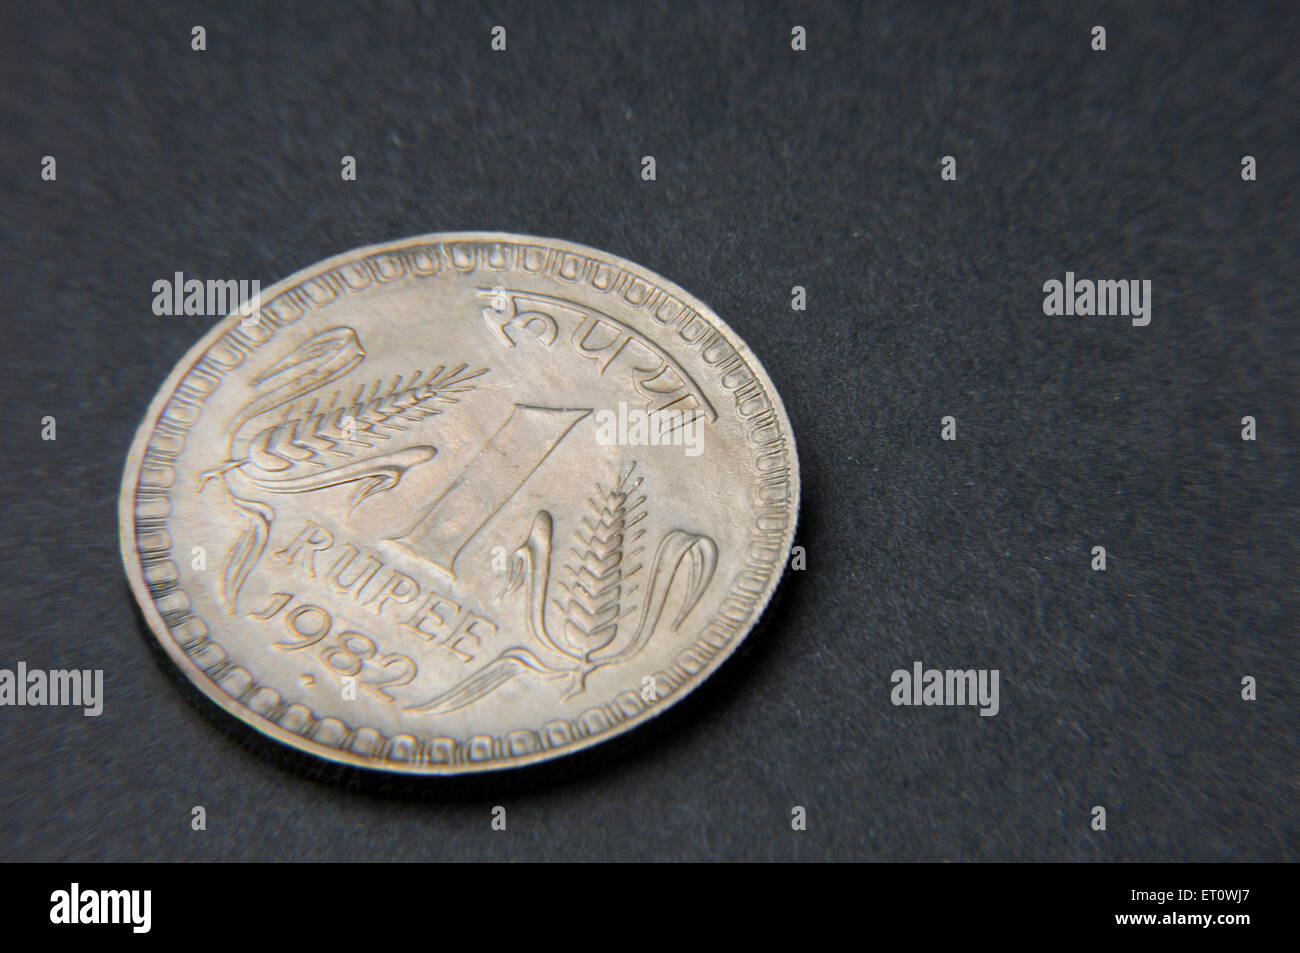 concept of Indian currency one rupee coin - Stock Image